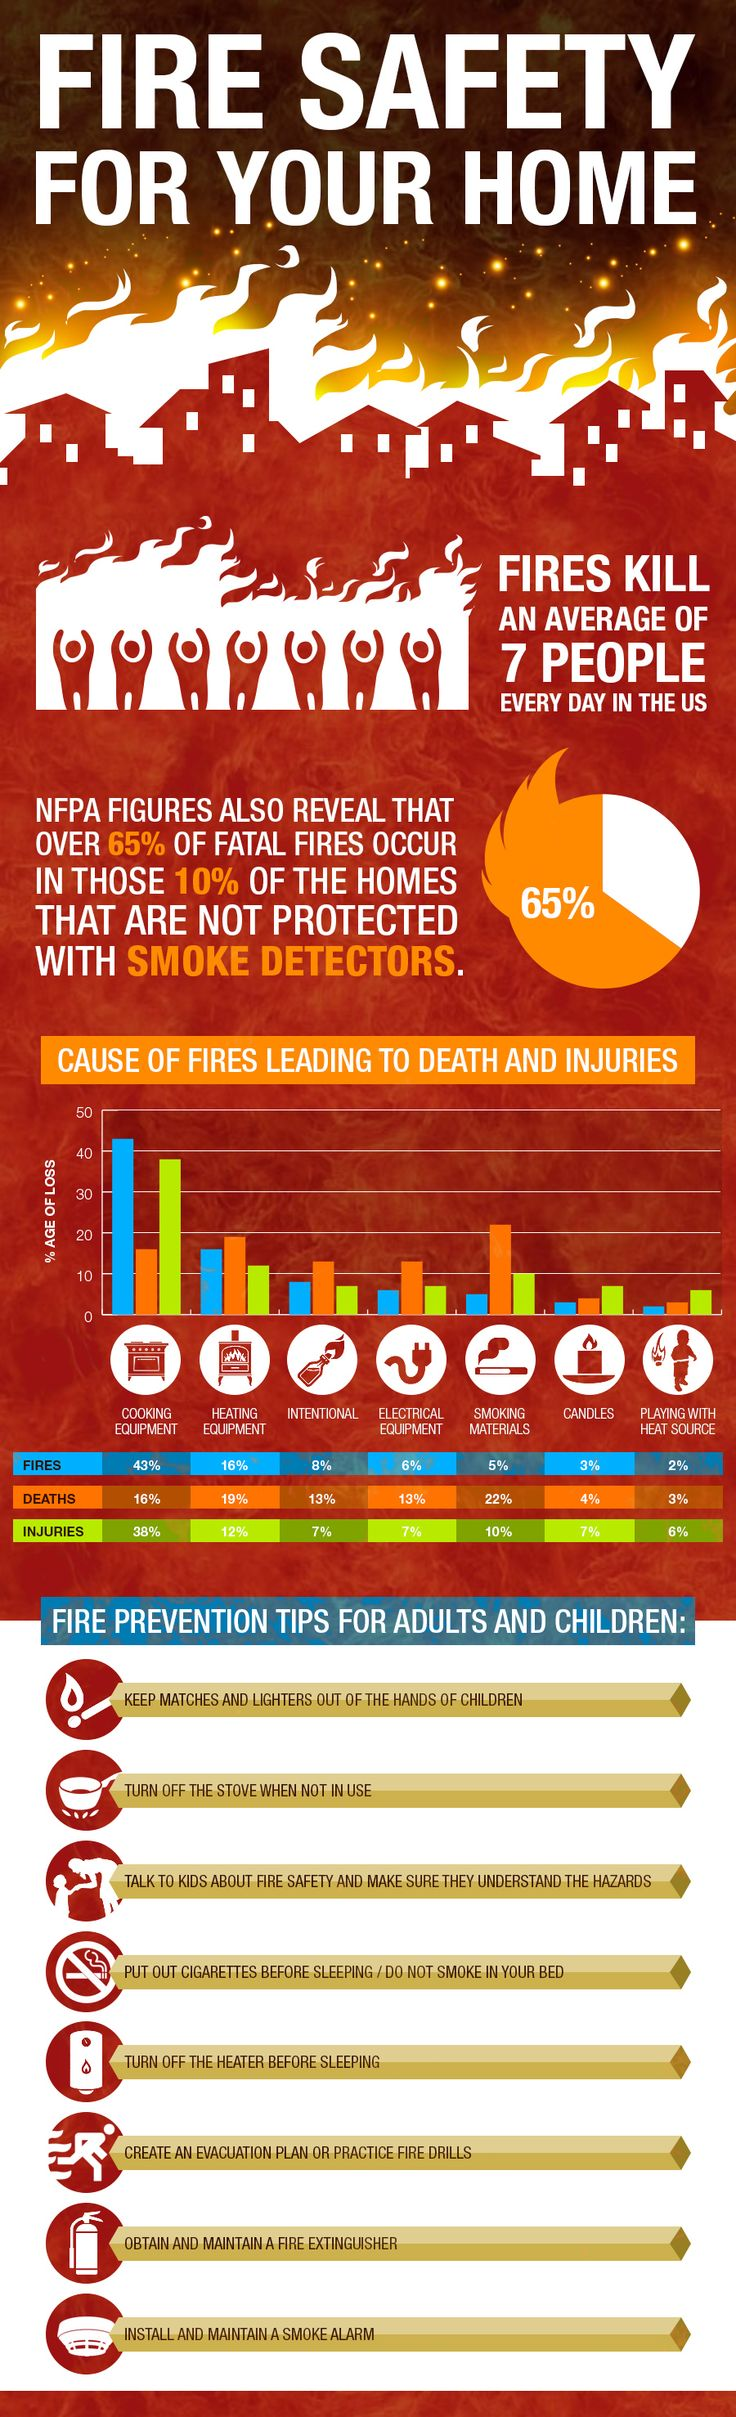 Firesafety For Your Home Fire Safety Tipsinfographic